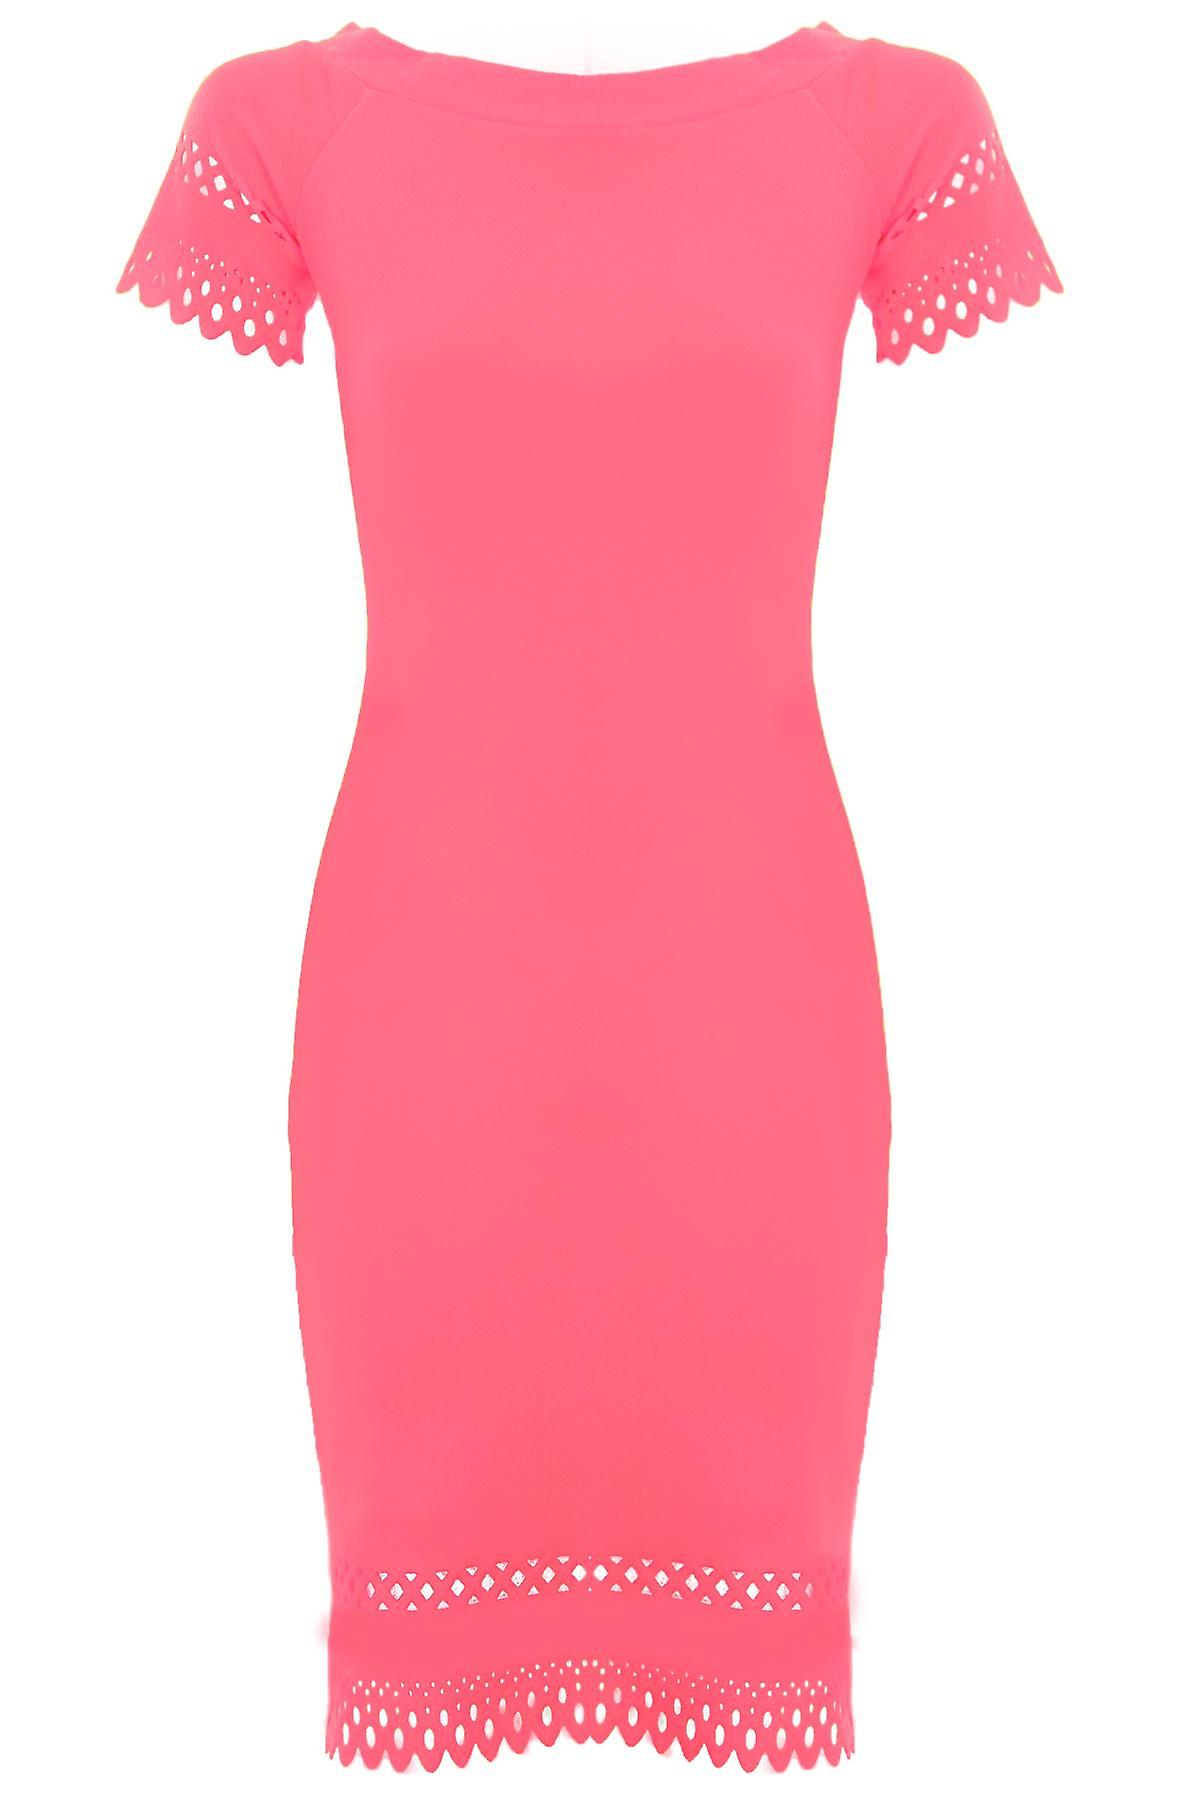 Ladies Off Shoulder Crepe Cut Out Scallop Hem Knee Length Neon Bodycon Dress